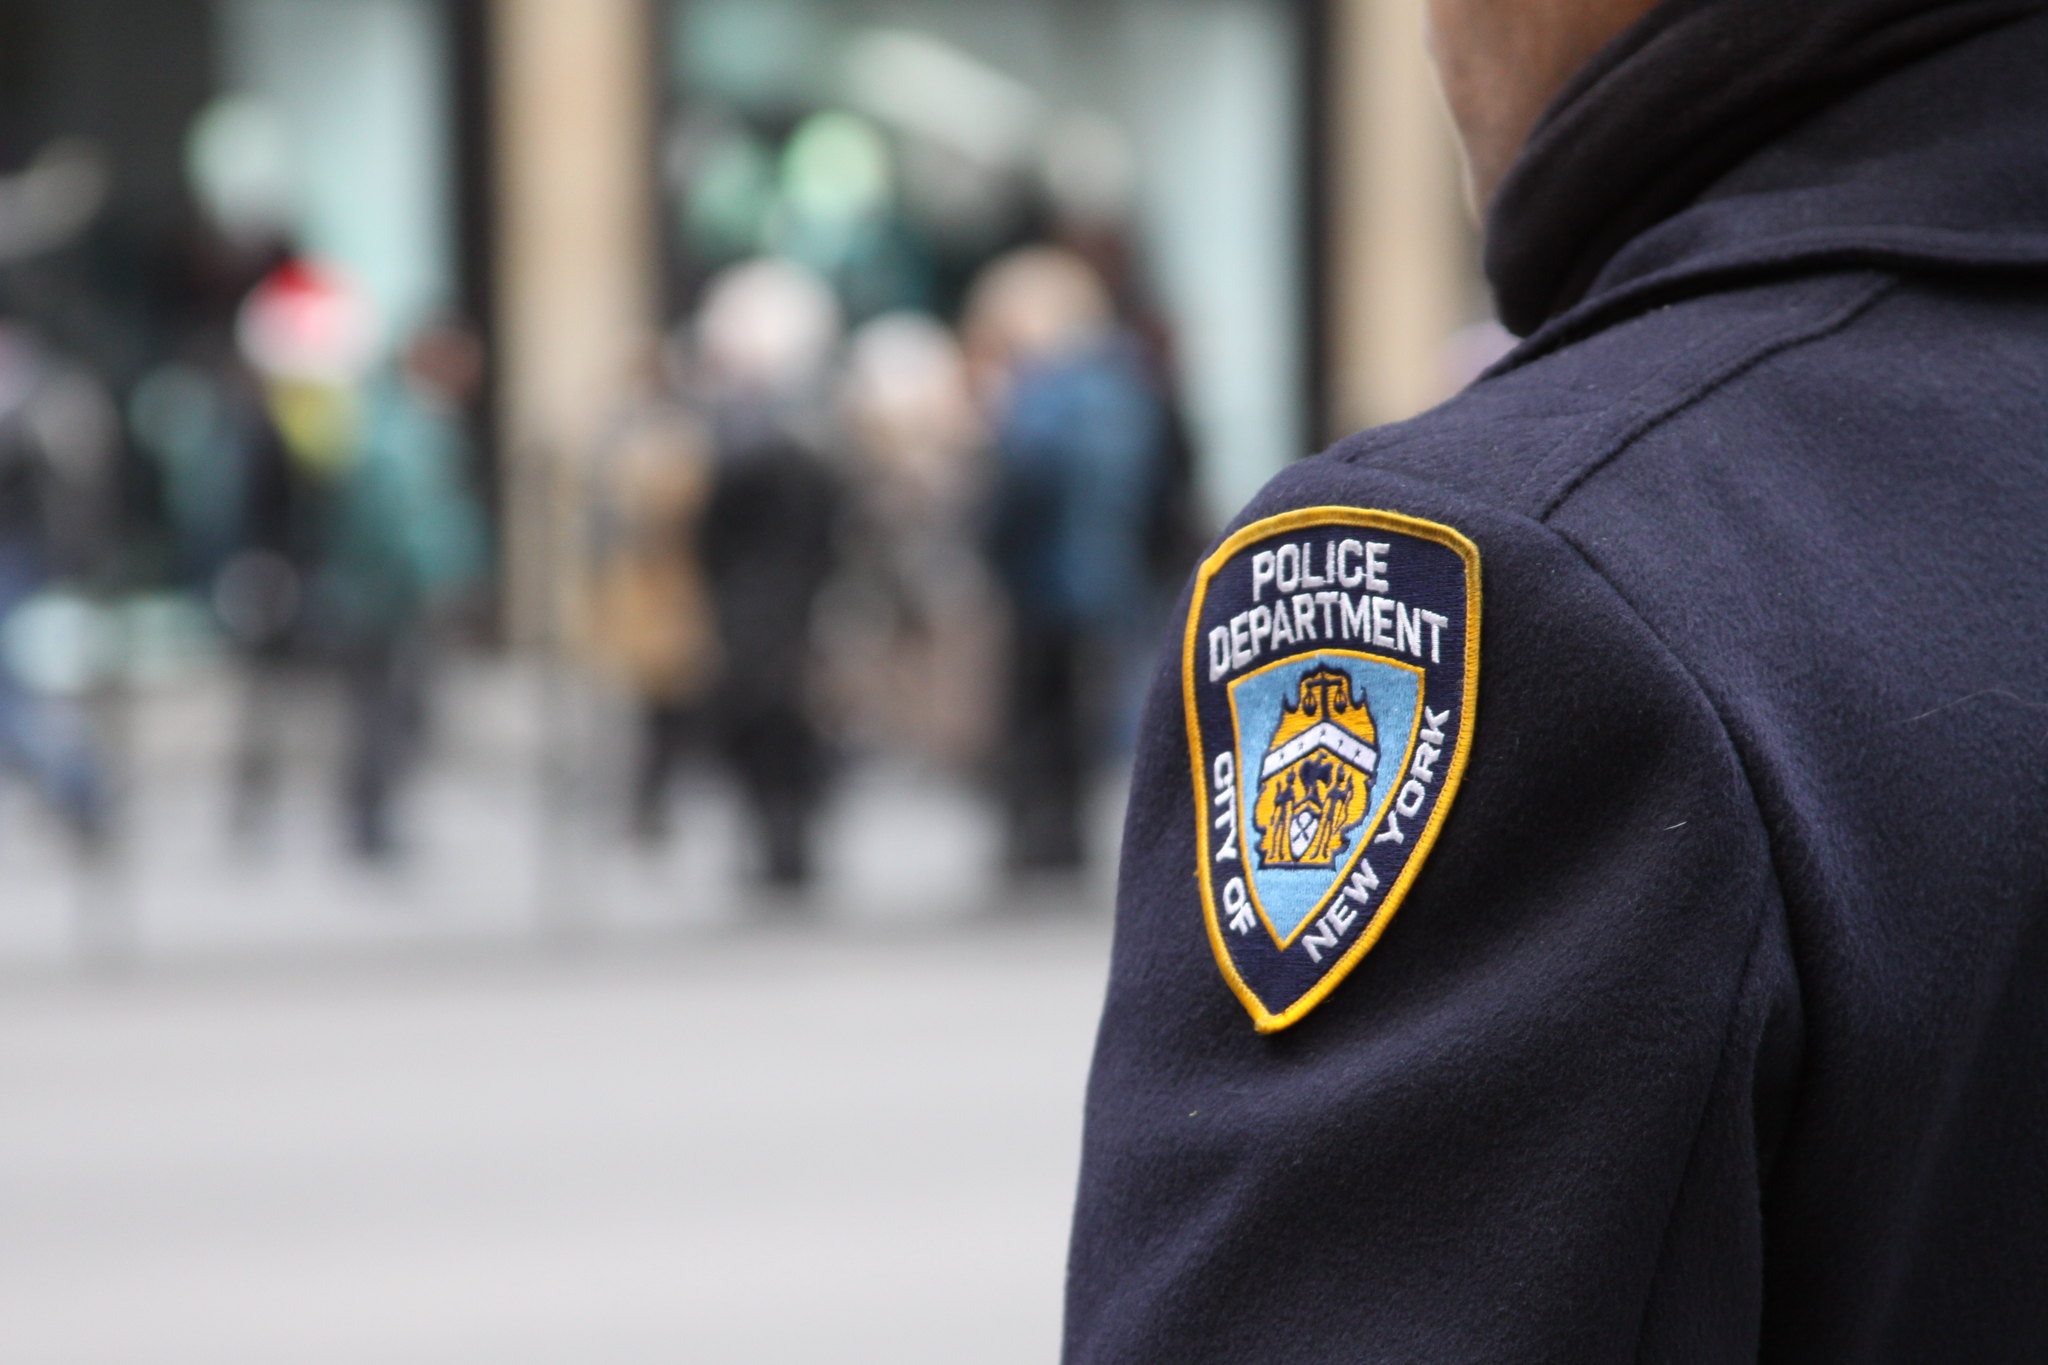 Photo of NYPD officer badge